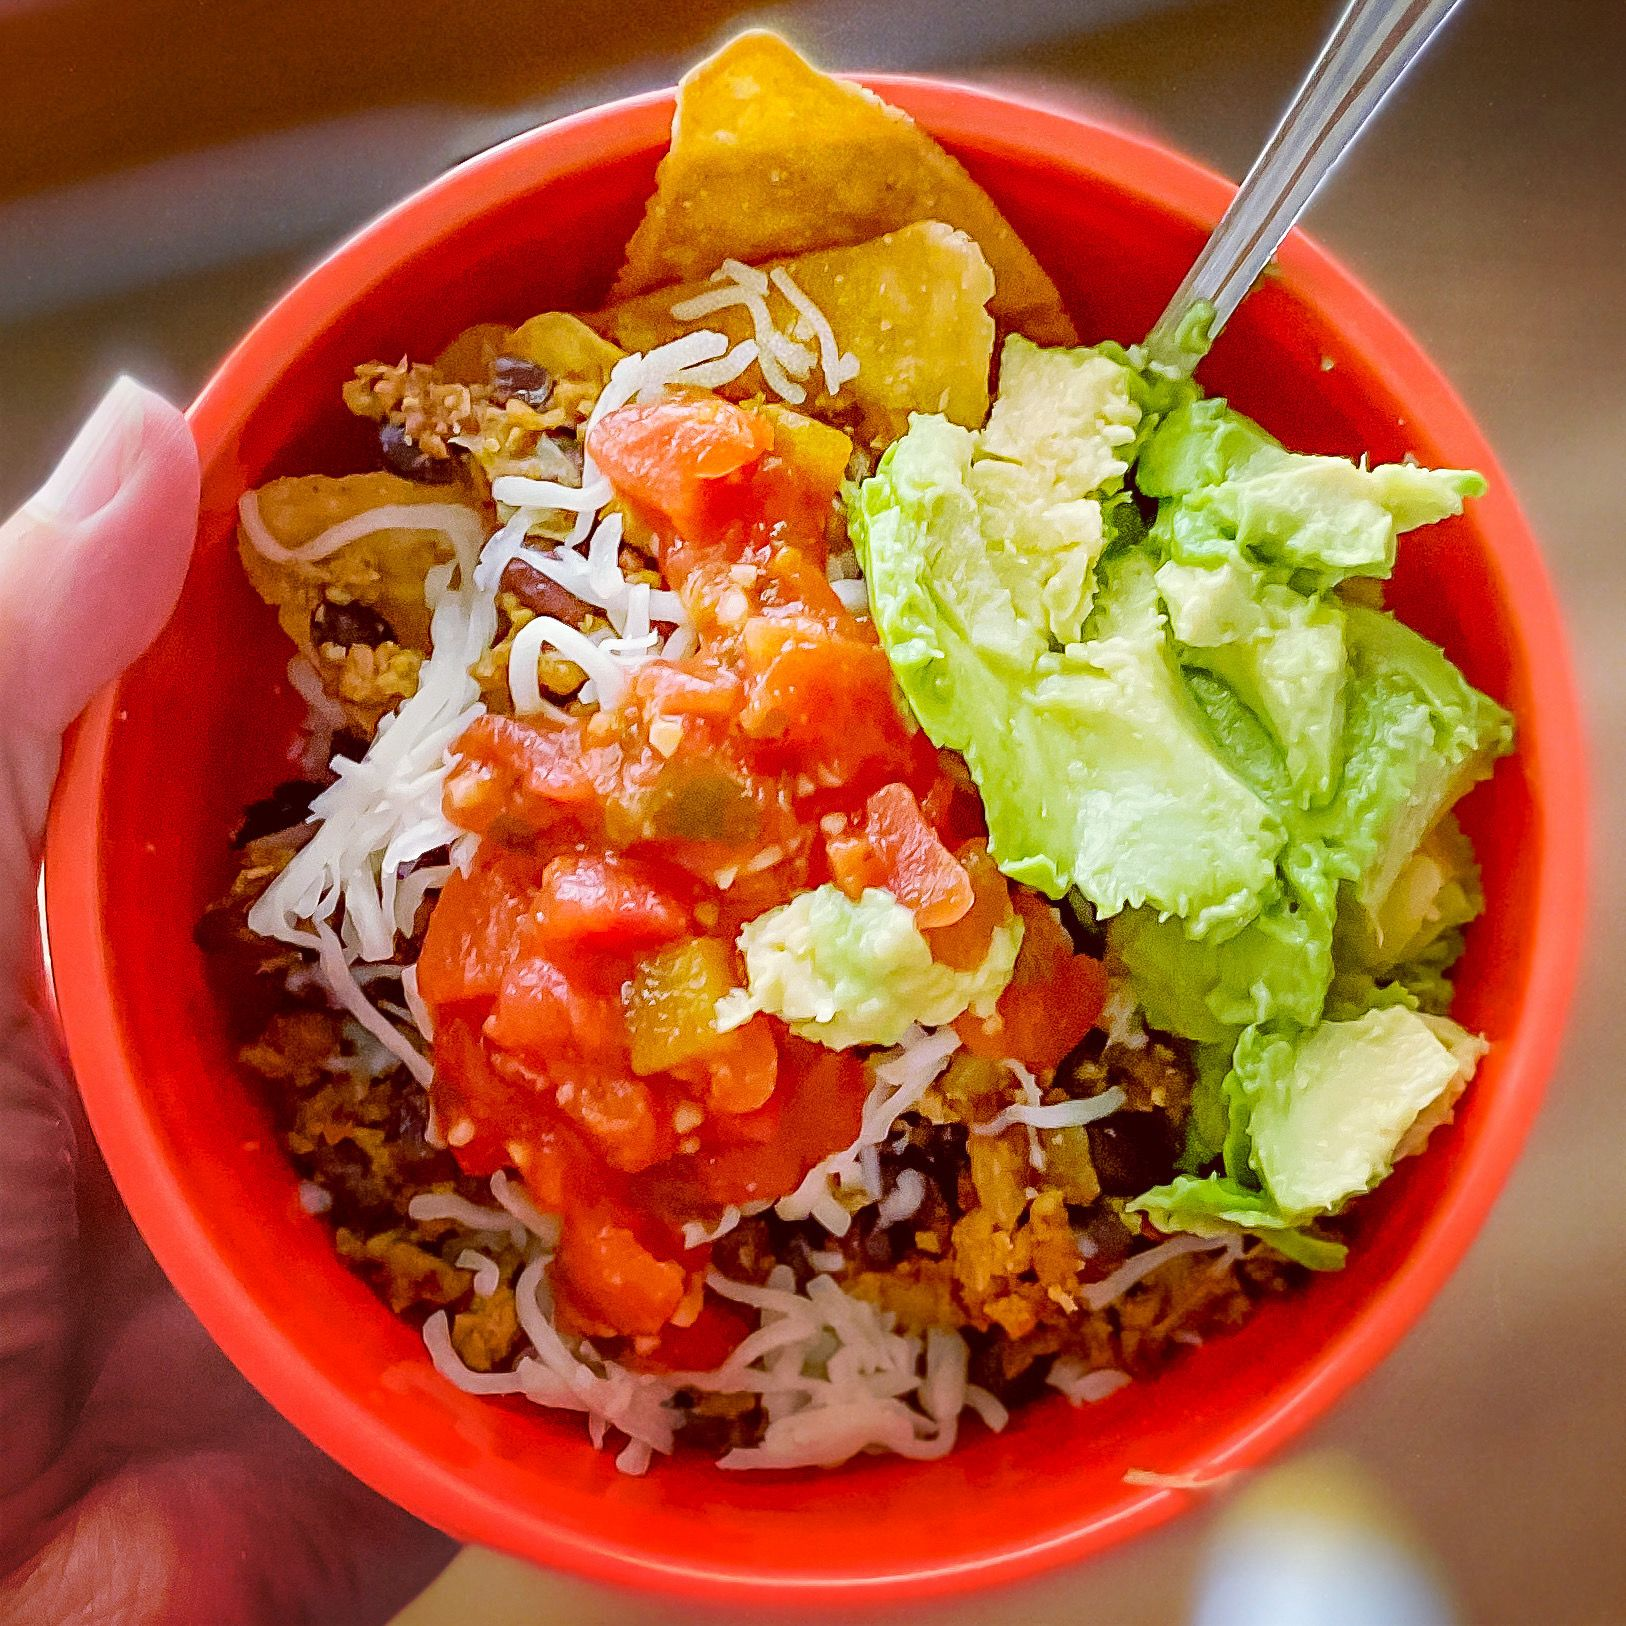 Taco Bowl topped with salsa and avocado